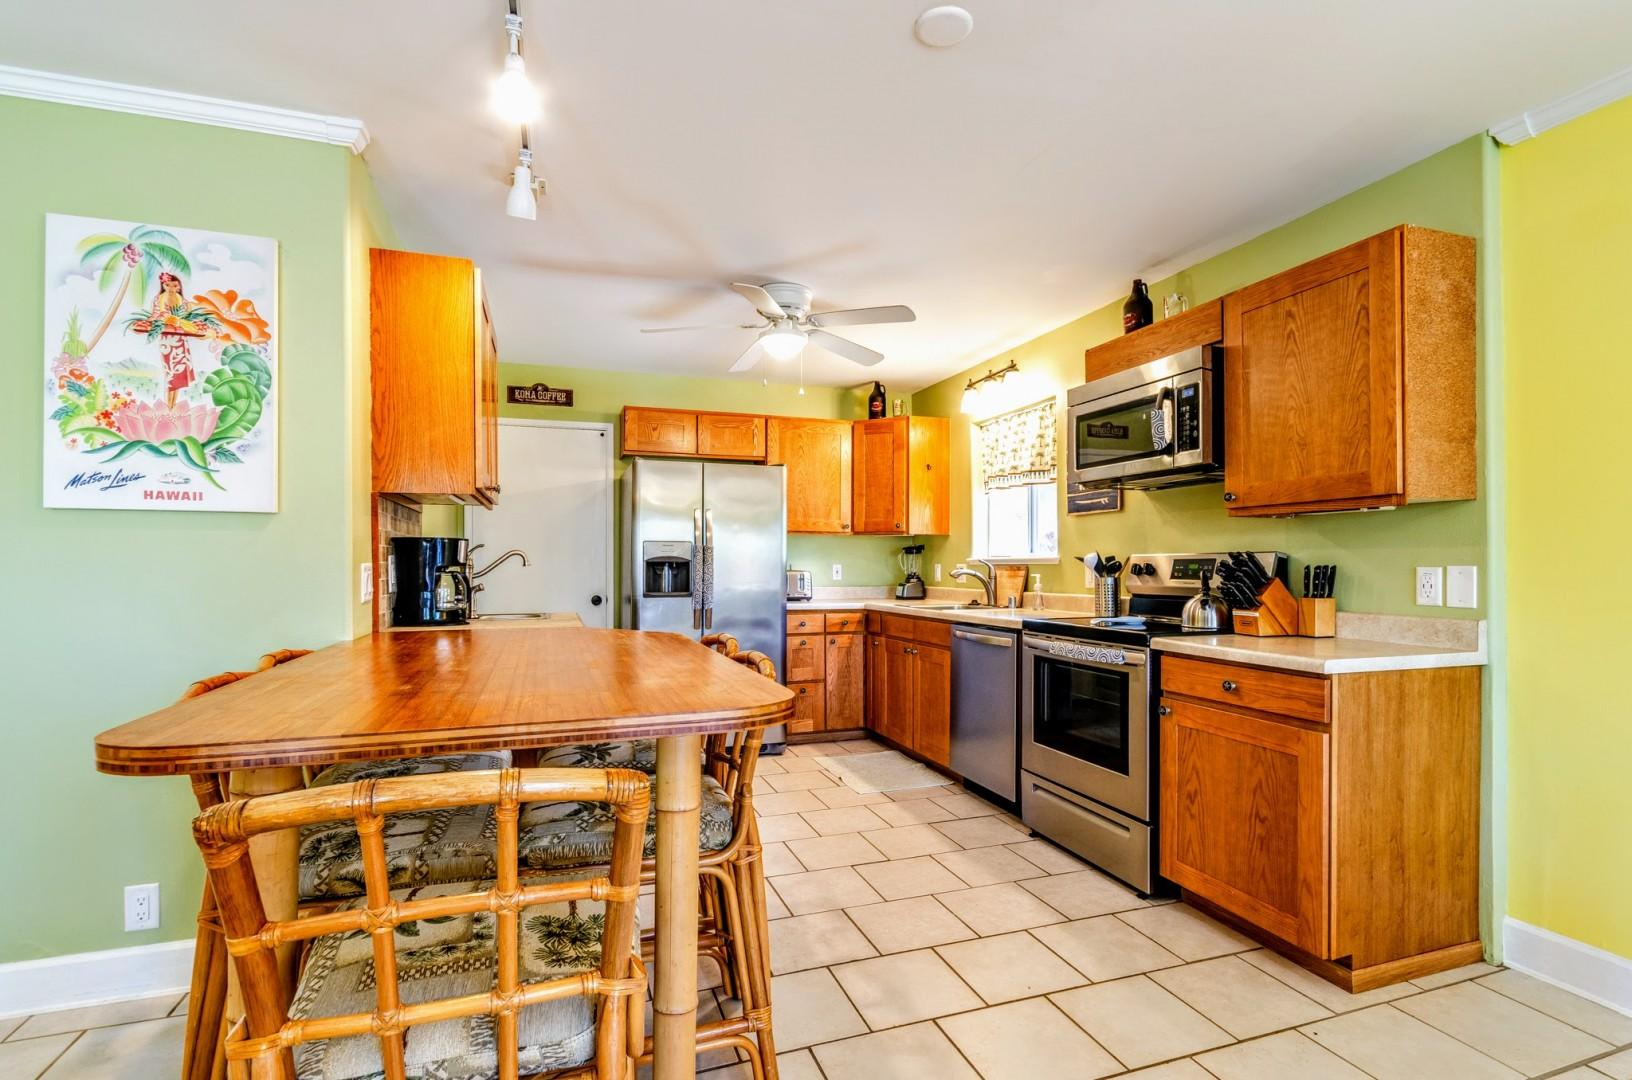 Spacious kitchen for your meal preparation needs